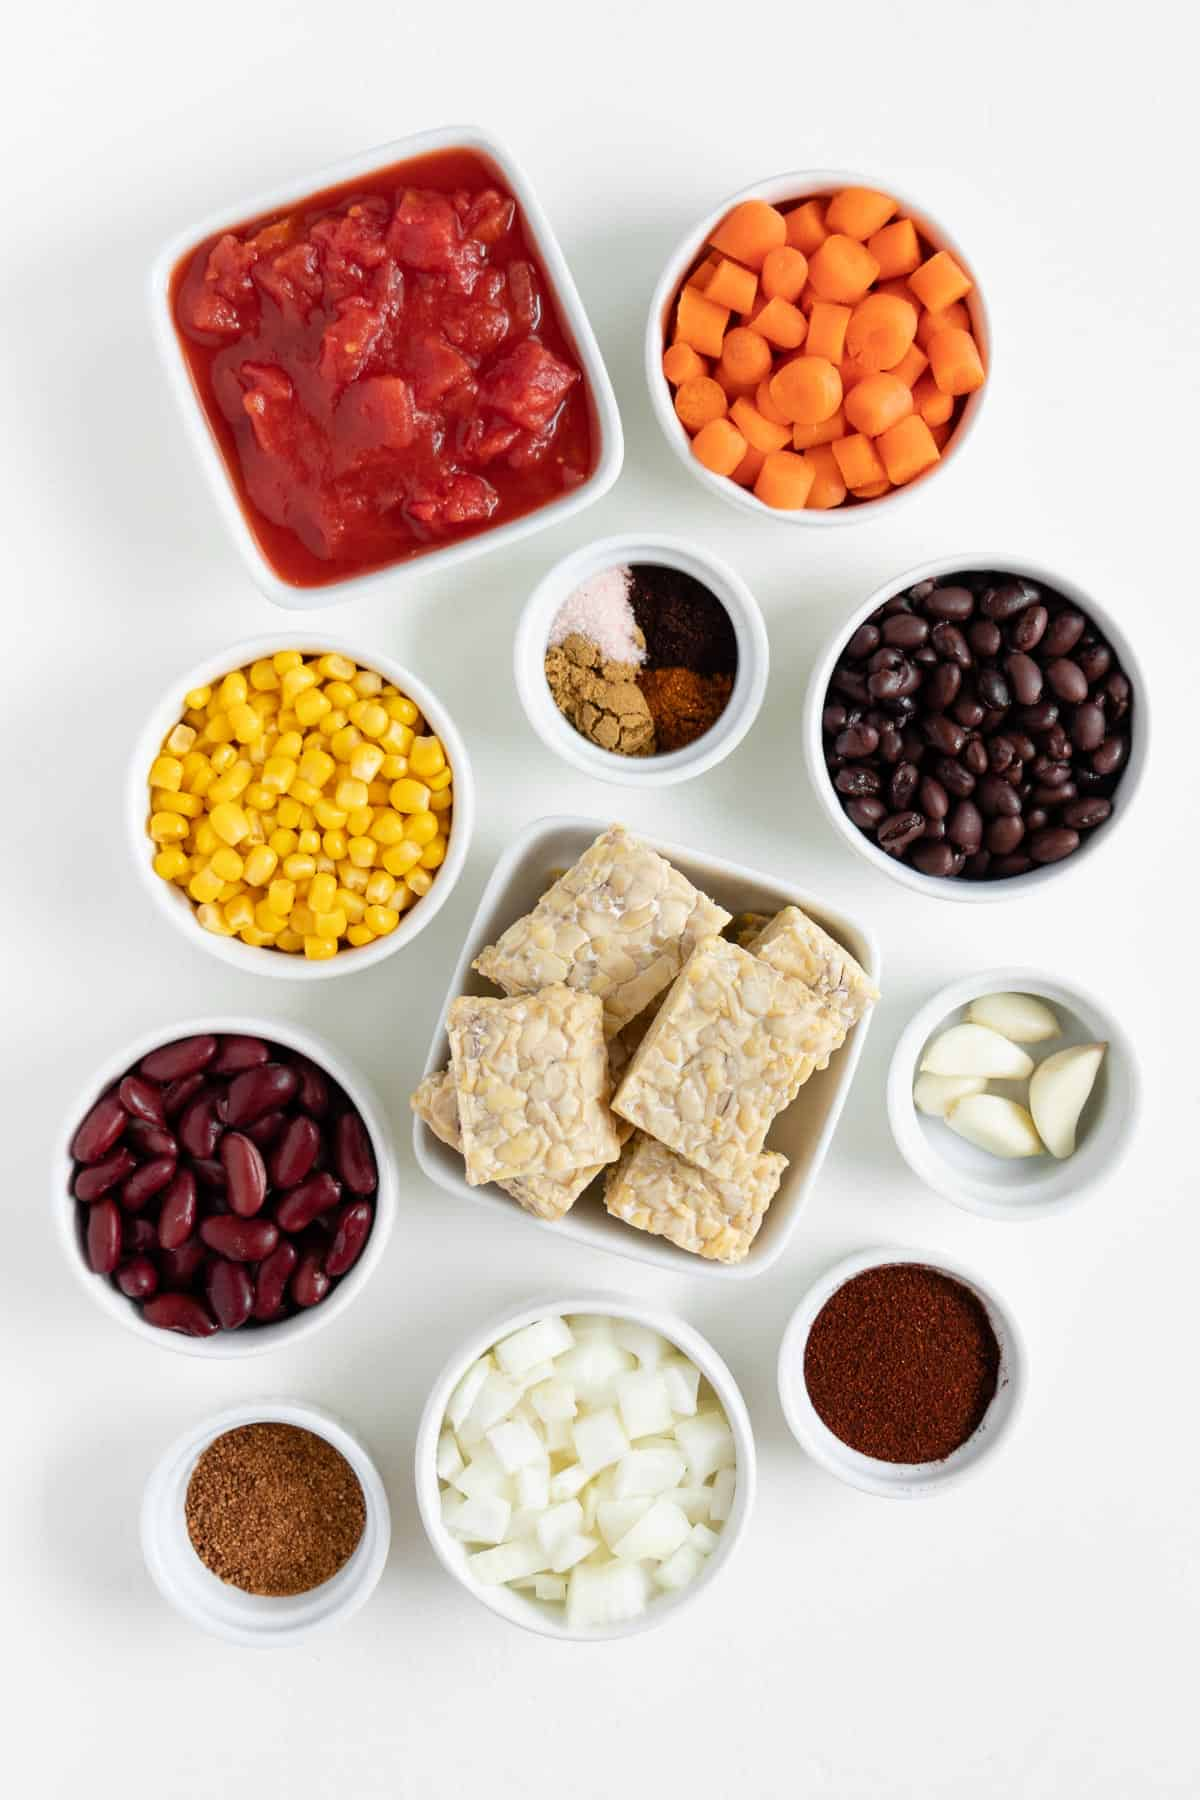 diced tomatoes, carrots, corn, black beans, soy protein, kidney beans, onion, garlic, and spices in small white bowls